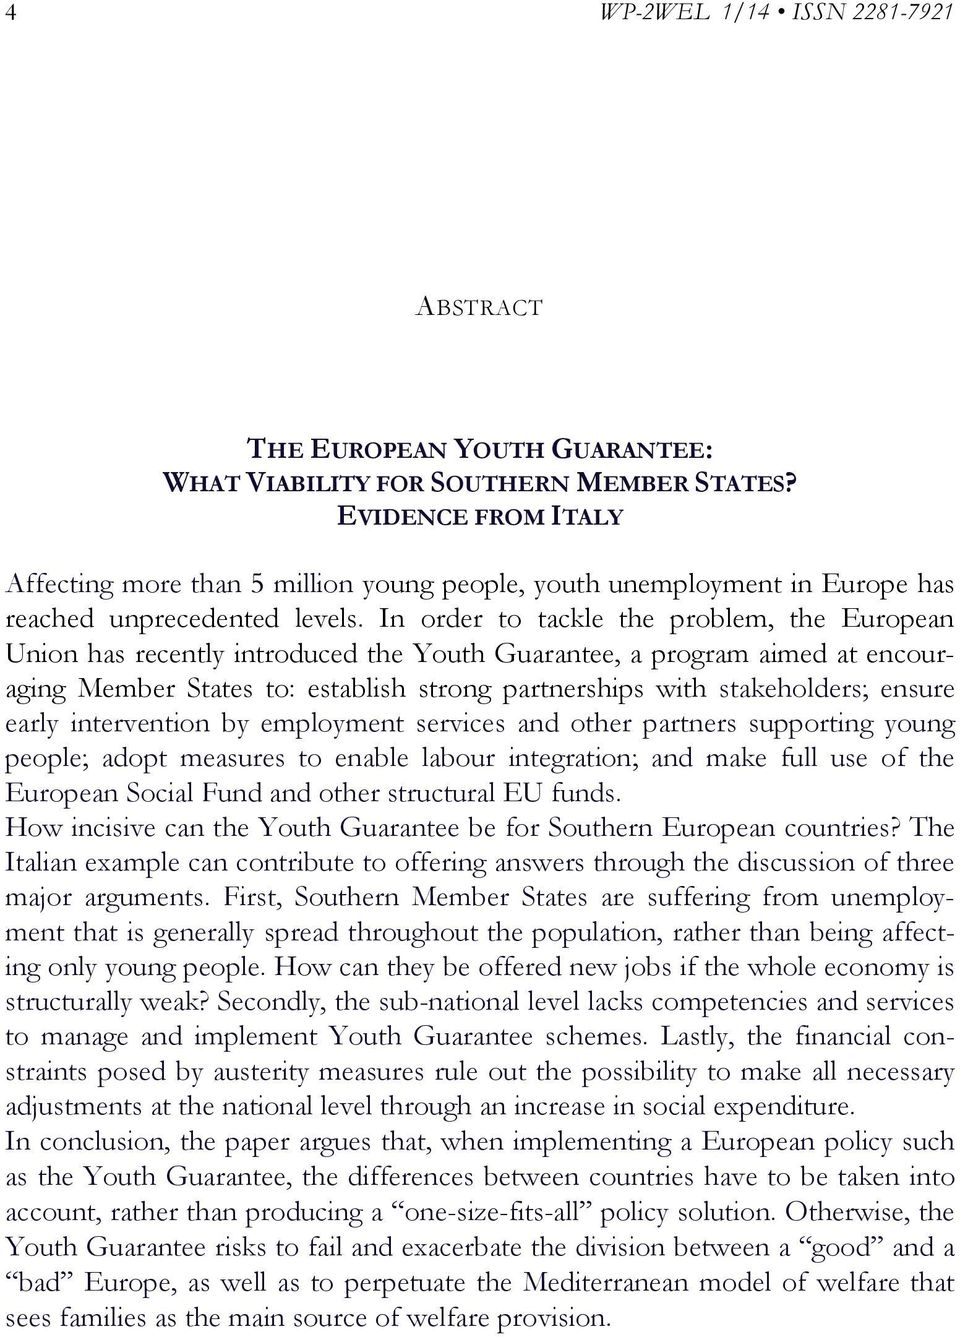 In order to tackle the problem, the European Union has recently introduced the Youth Guarantee, a program aimed at encouraging Member States to: establish strong partnerships with stakeholders;